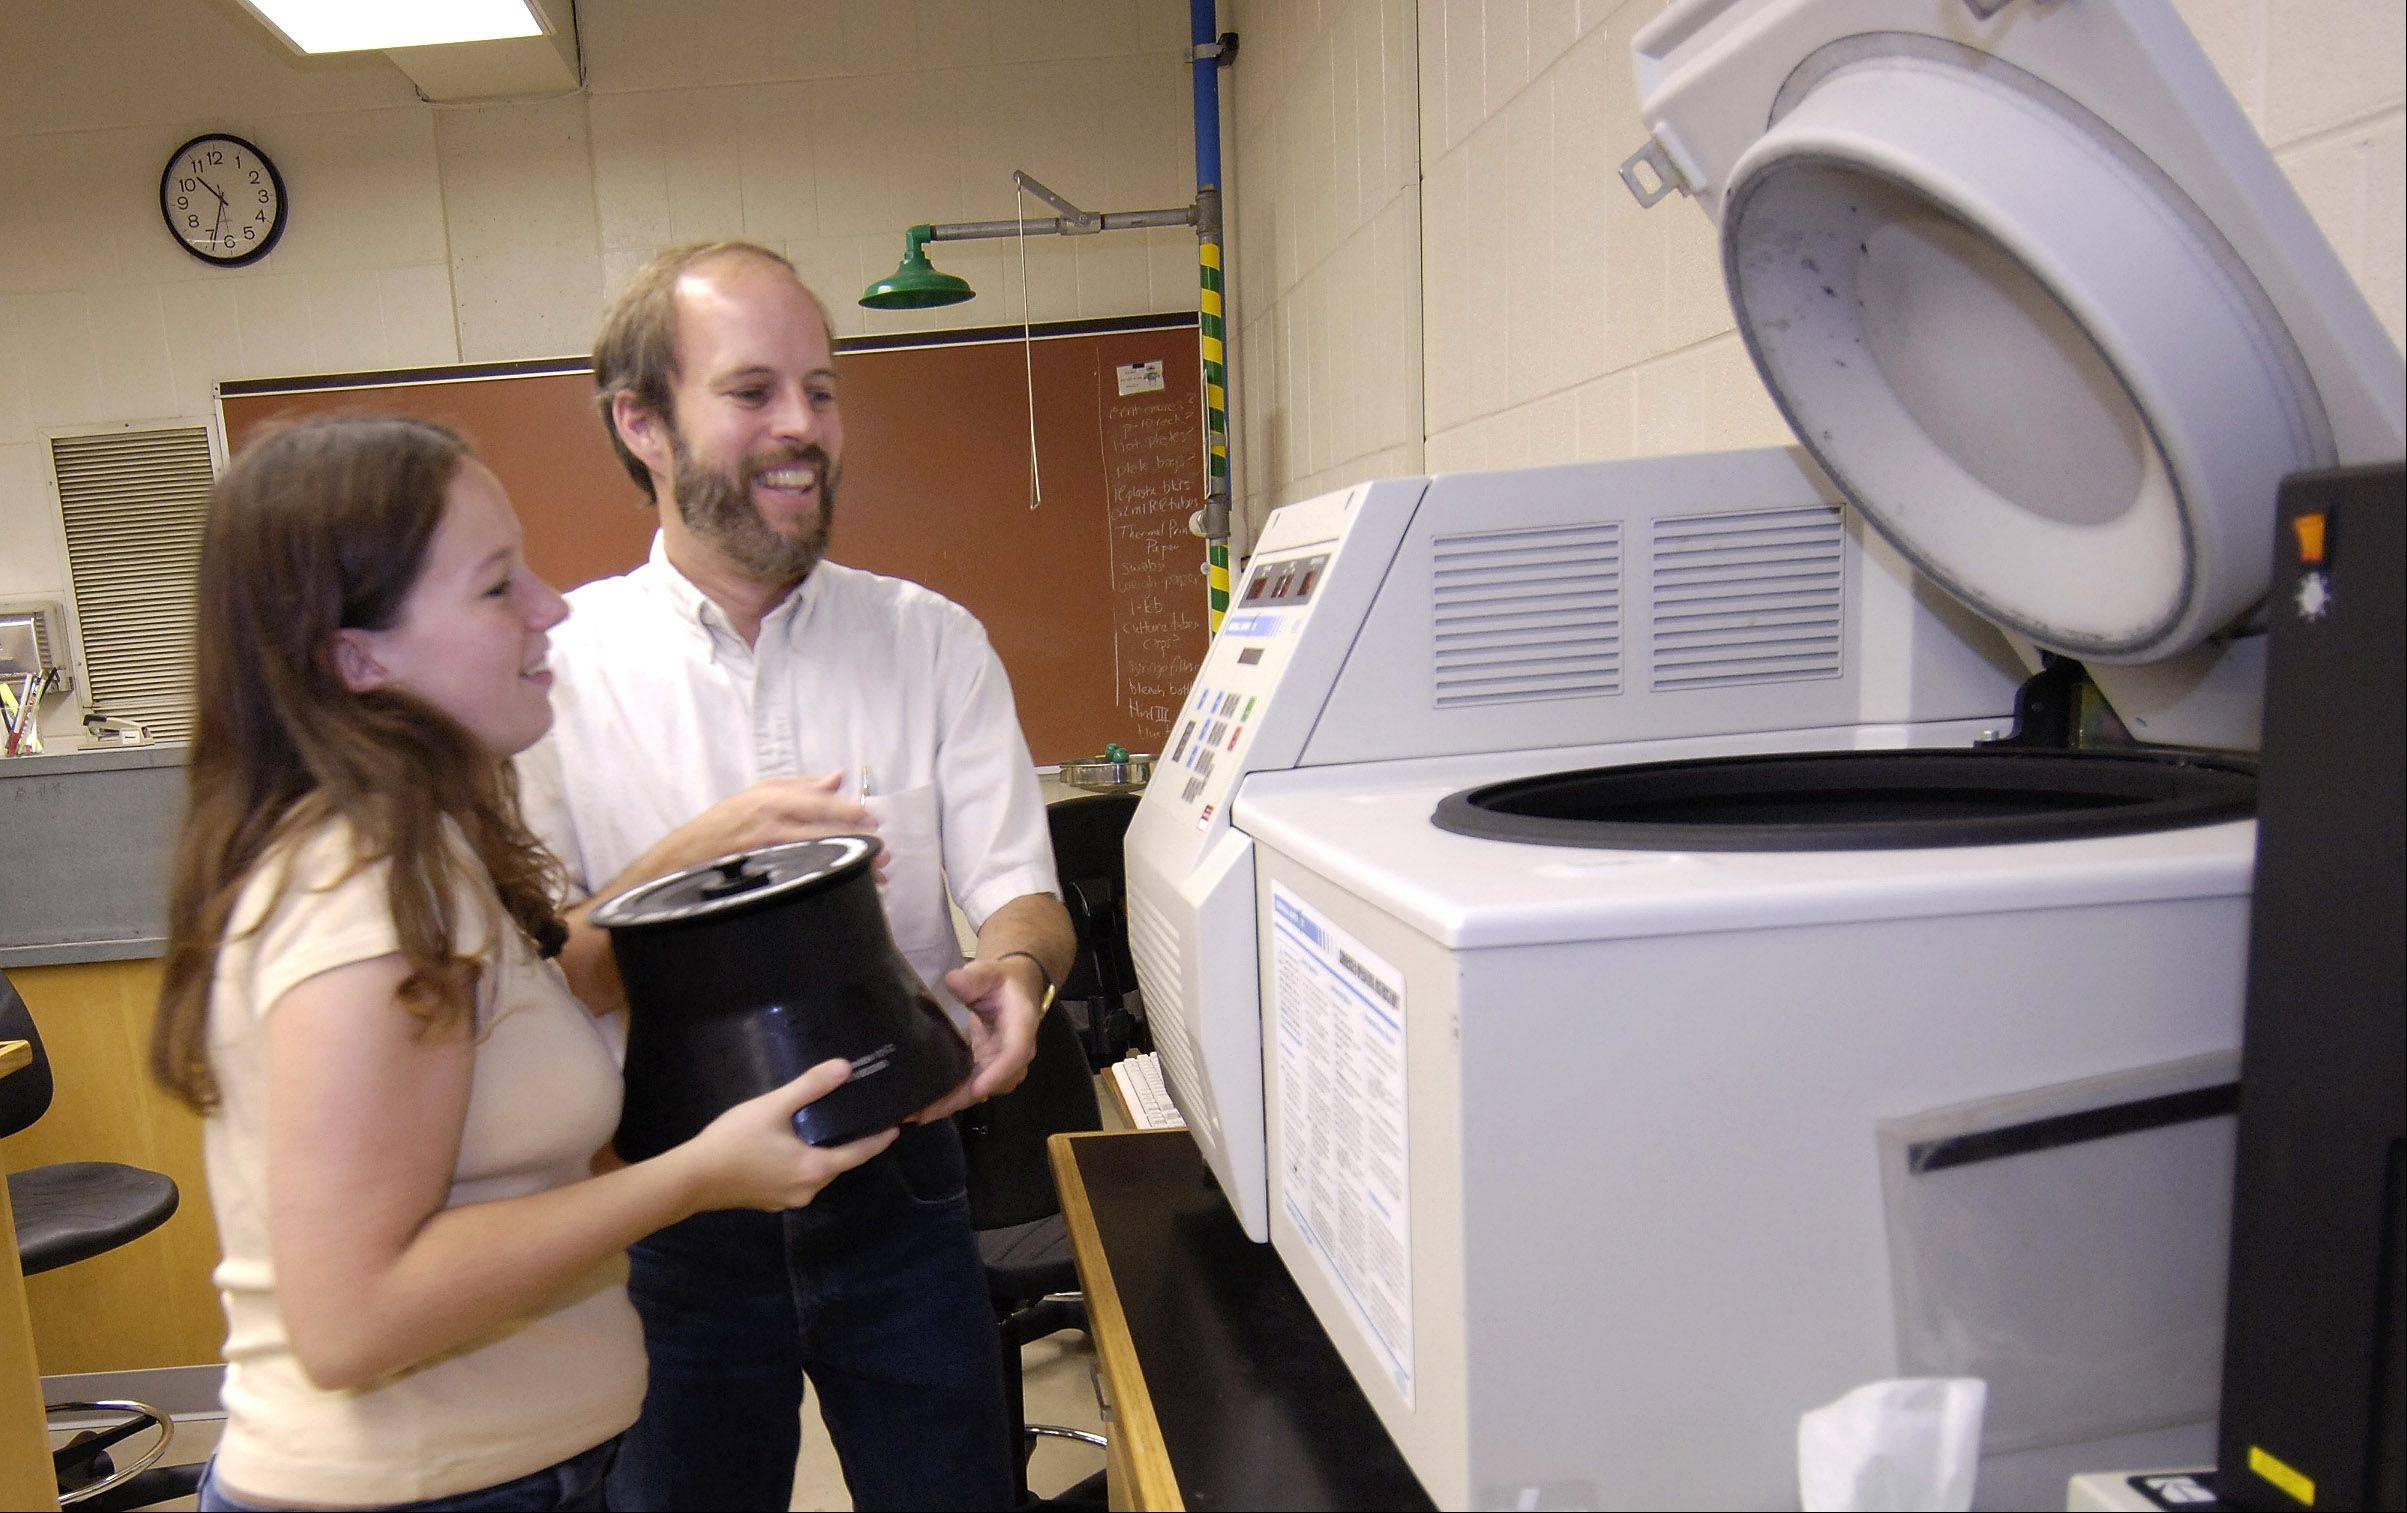 Daily Herald/2005 NCC junior Nicole Flinn, left, and Jon Visick, Assistant Biology Professor, lift a rotor into a Centrifuge in the Genetics & Microbiology lab at the Science Center in Naperville.